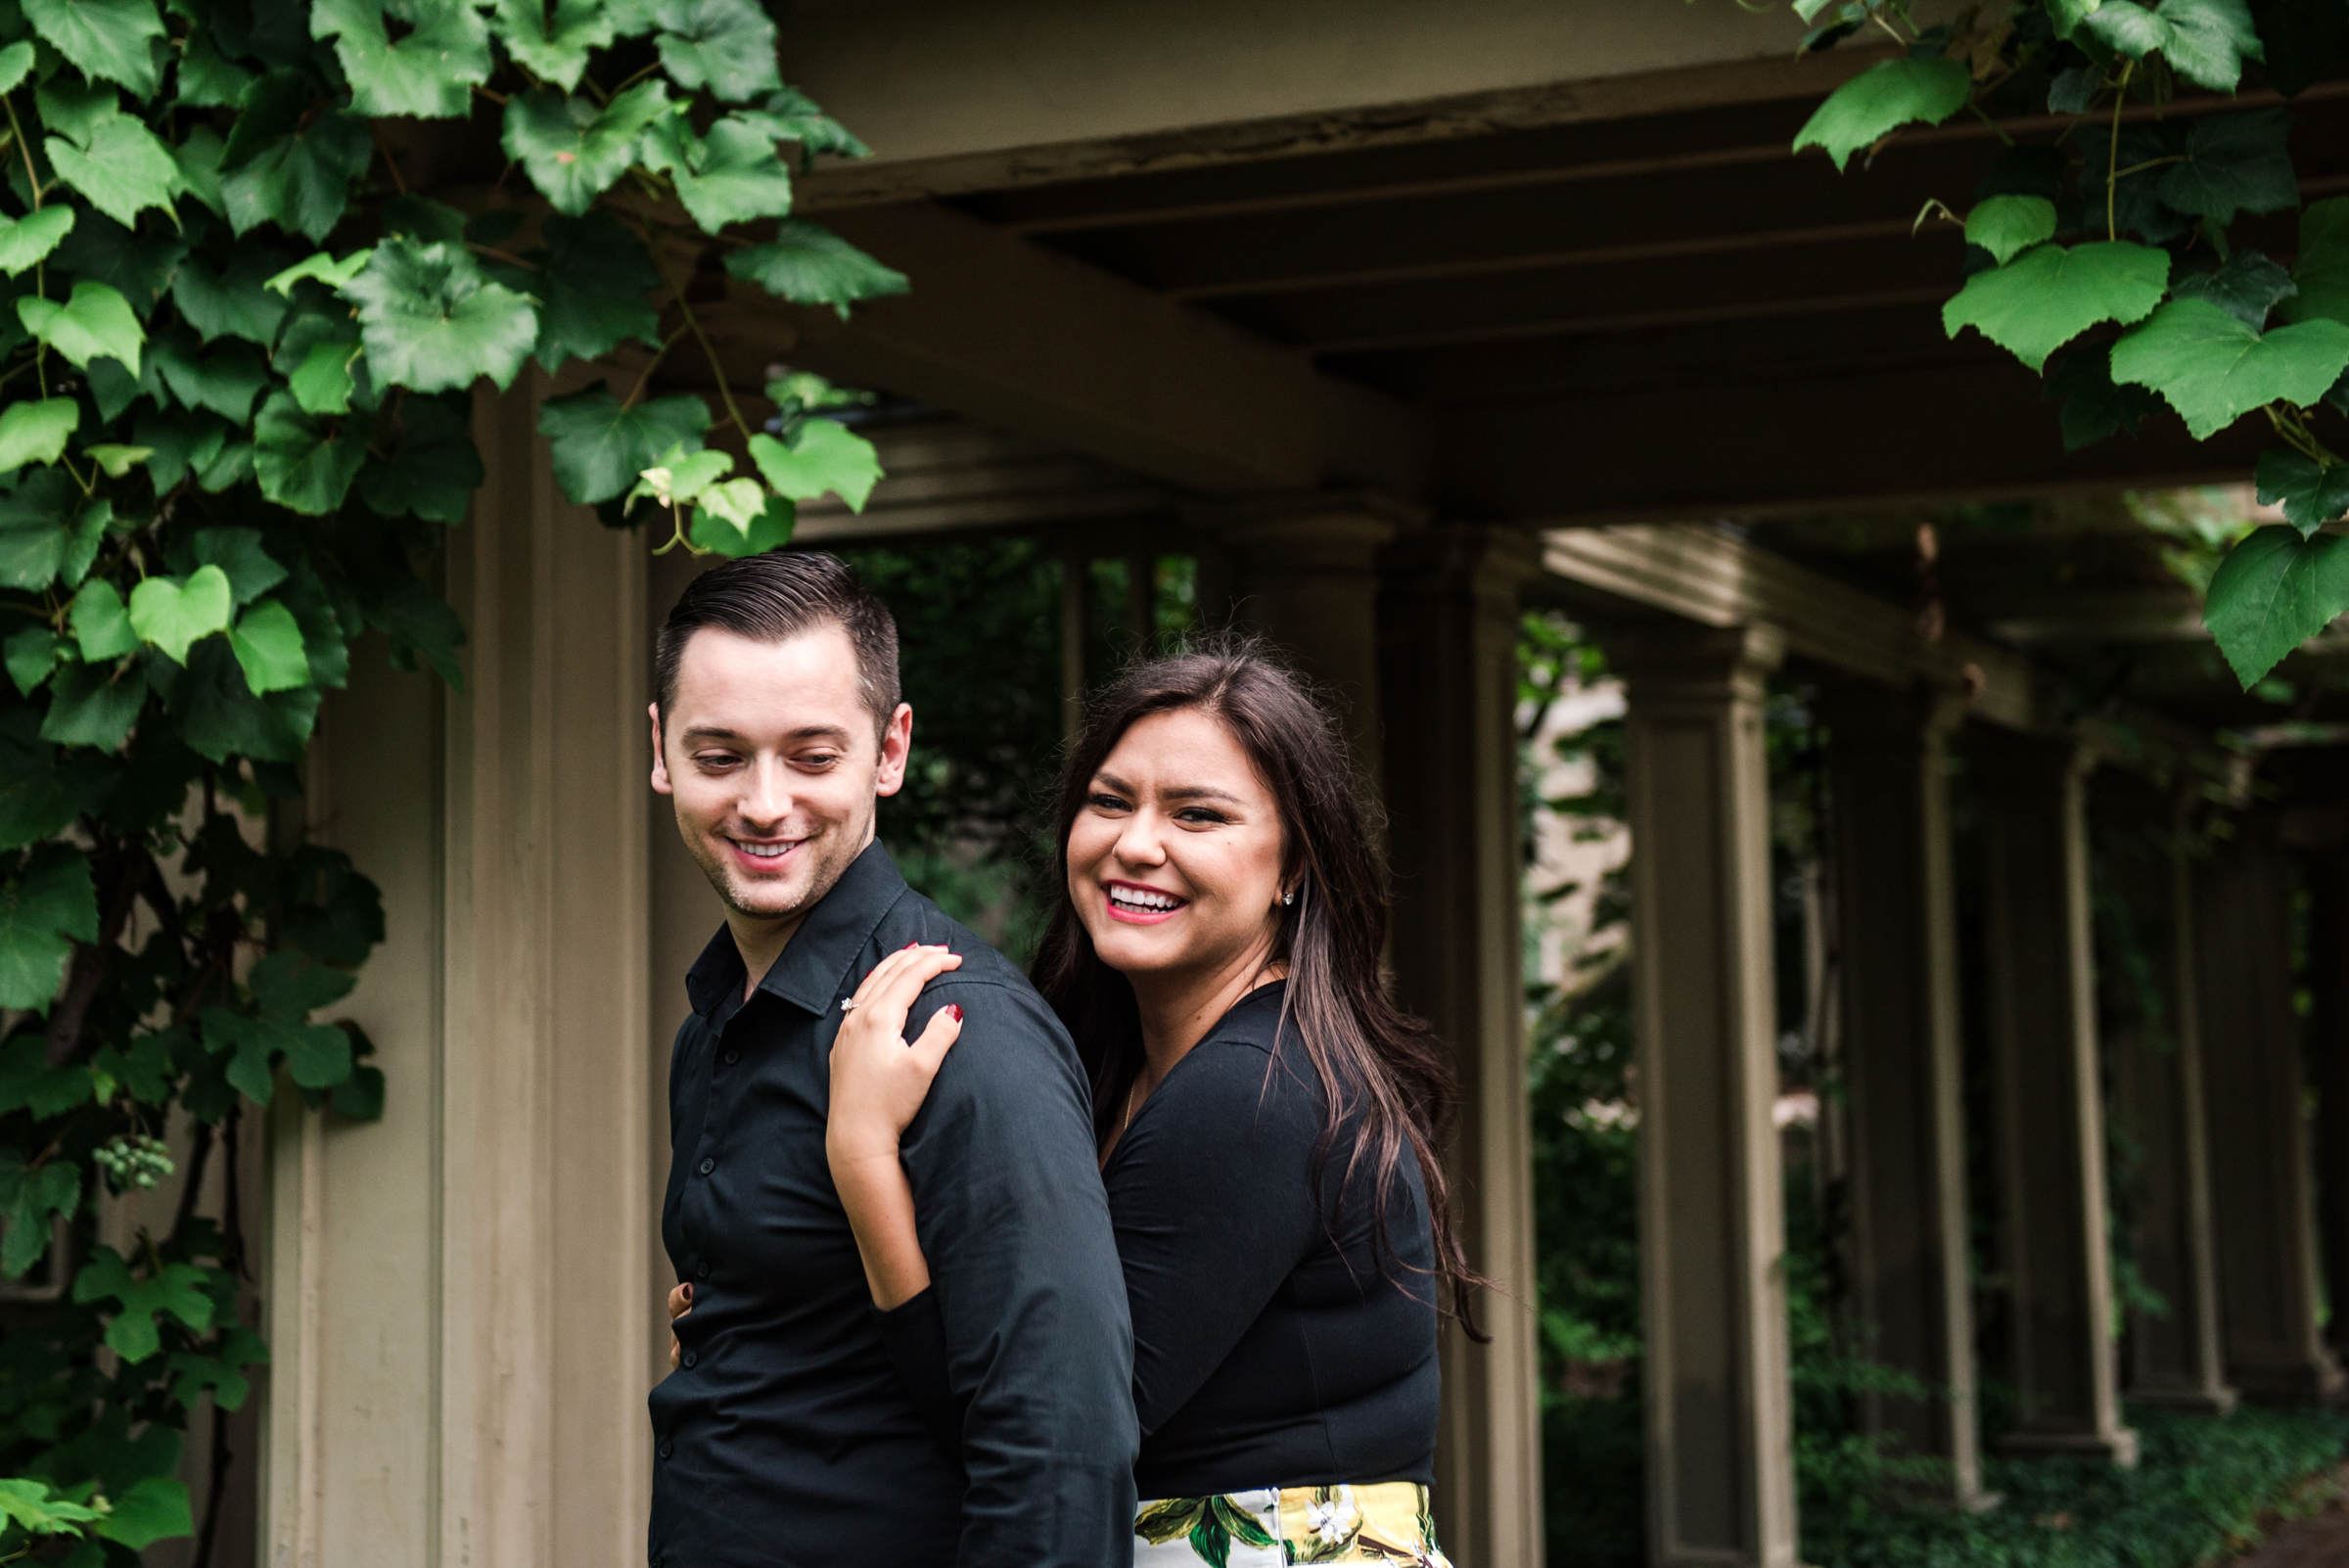 George_Eastman_House_Rochester_Engagement_Session_JILL_STUDIO_Rochester_NY_Photographer_DSC_6434.jpg